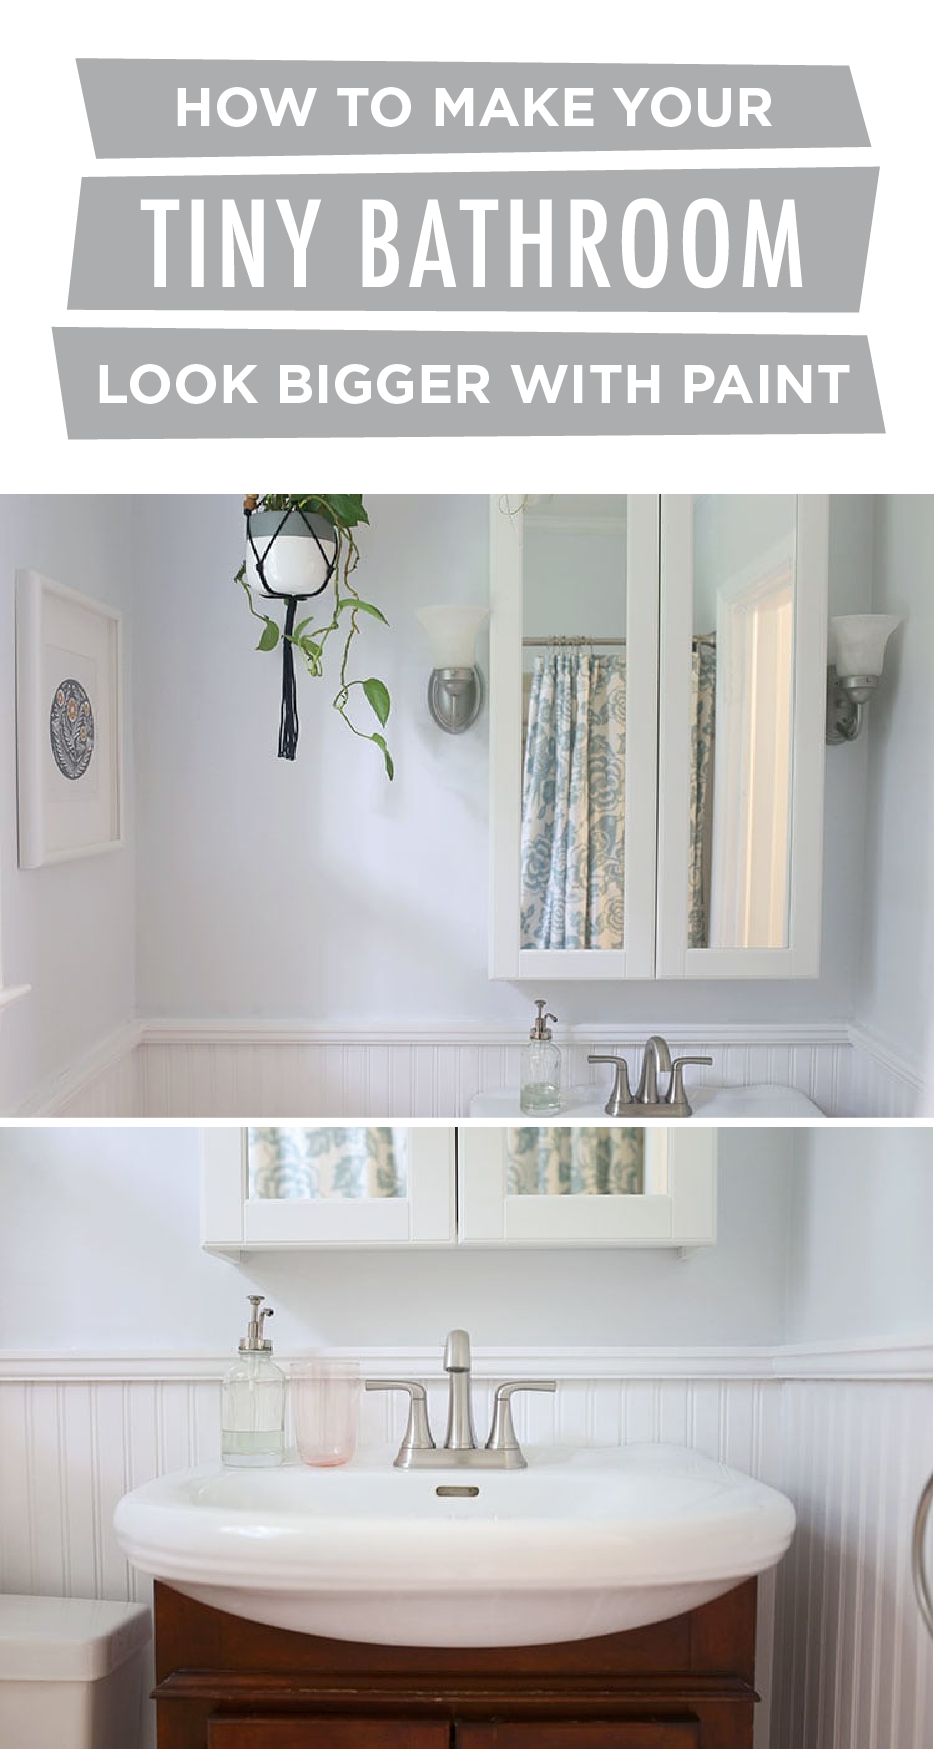 How To Make A Tiny Bathroom Look Bigger With Paint Small Bathroom Paint Small Bathroom Paint Colors Small Room Paint